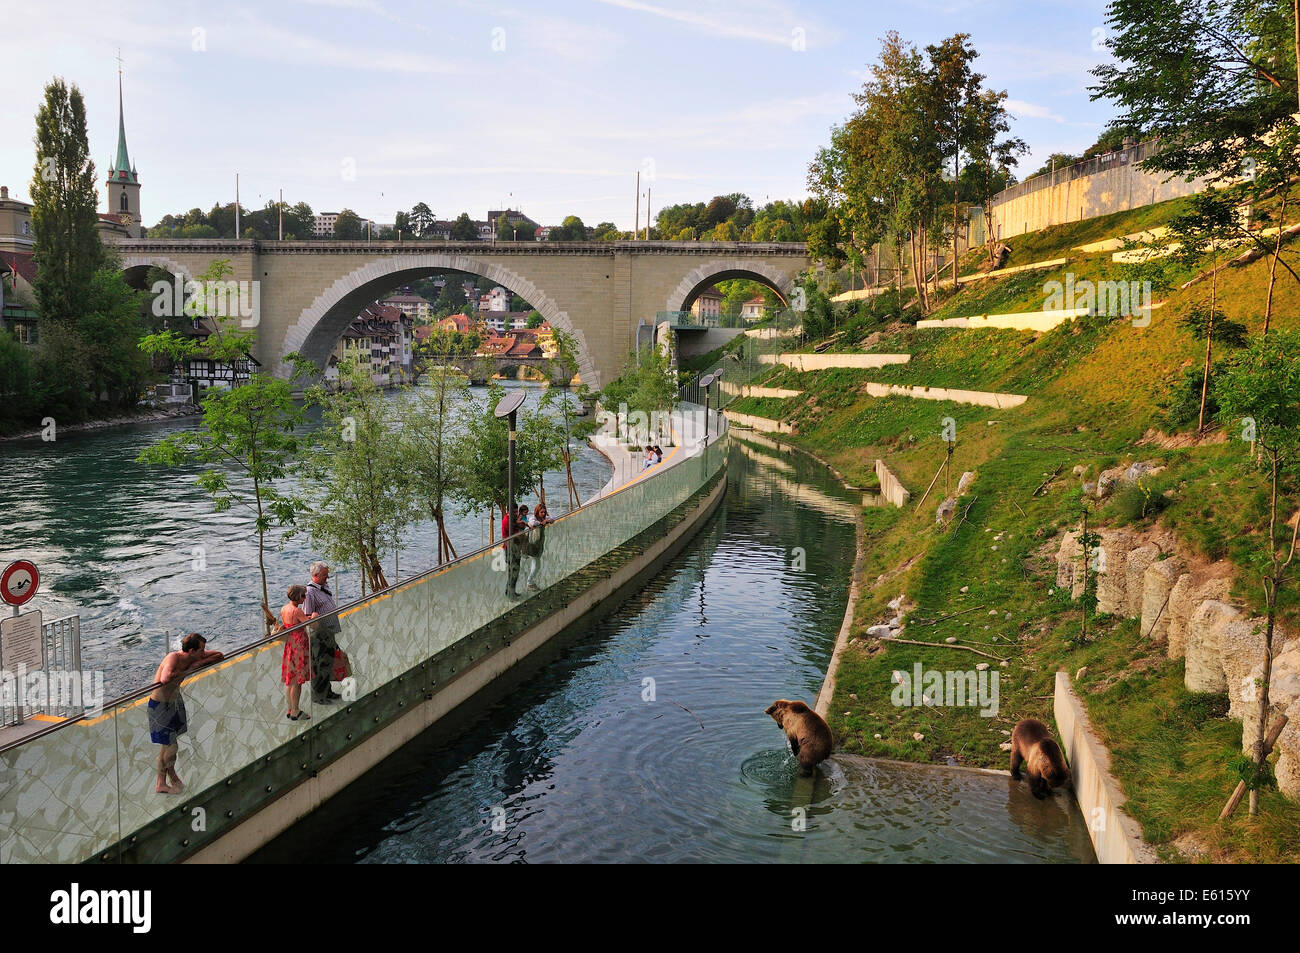 Bears in the new outdoor enclosure on the river Aare, Bärengraben trench and Nydeggbrücke bridge, Bern, - Stock Image